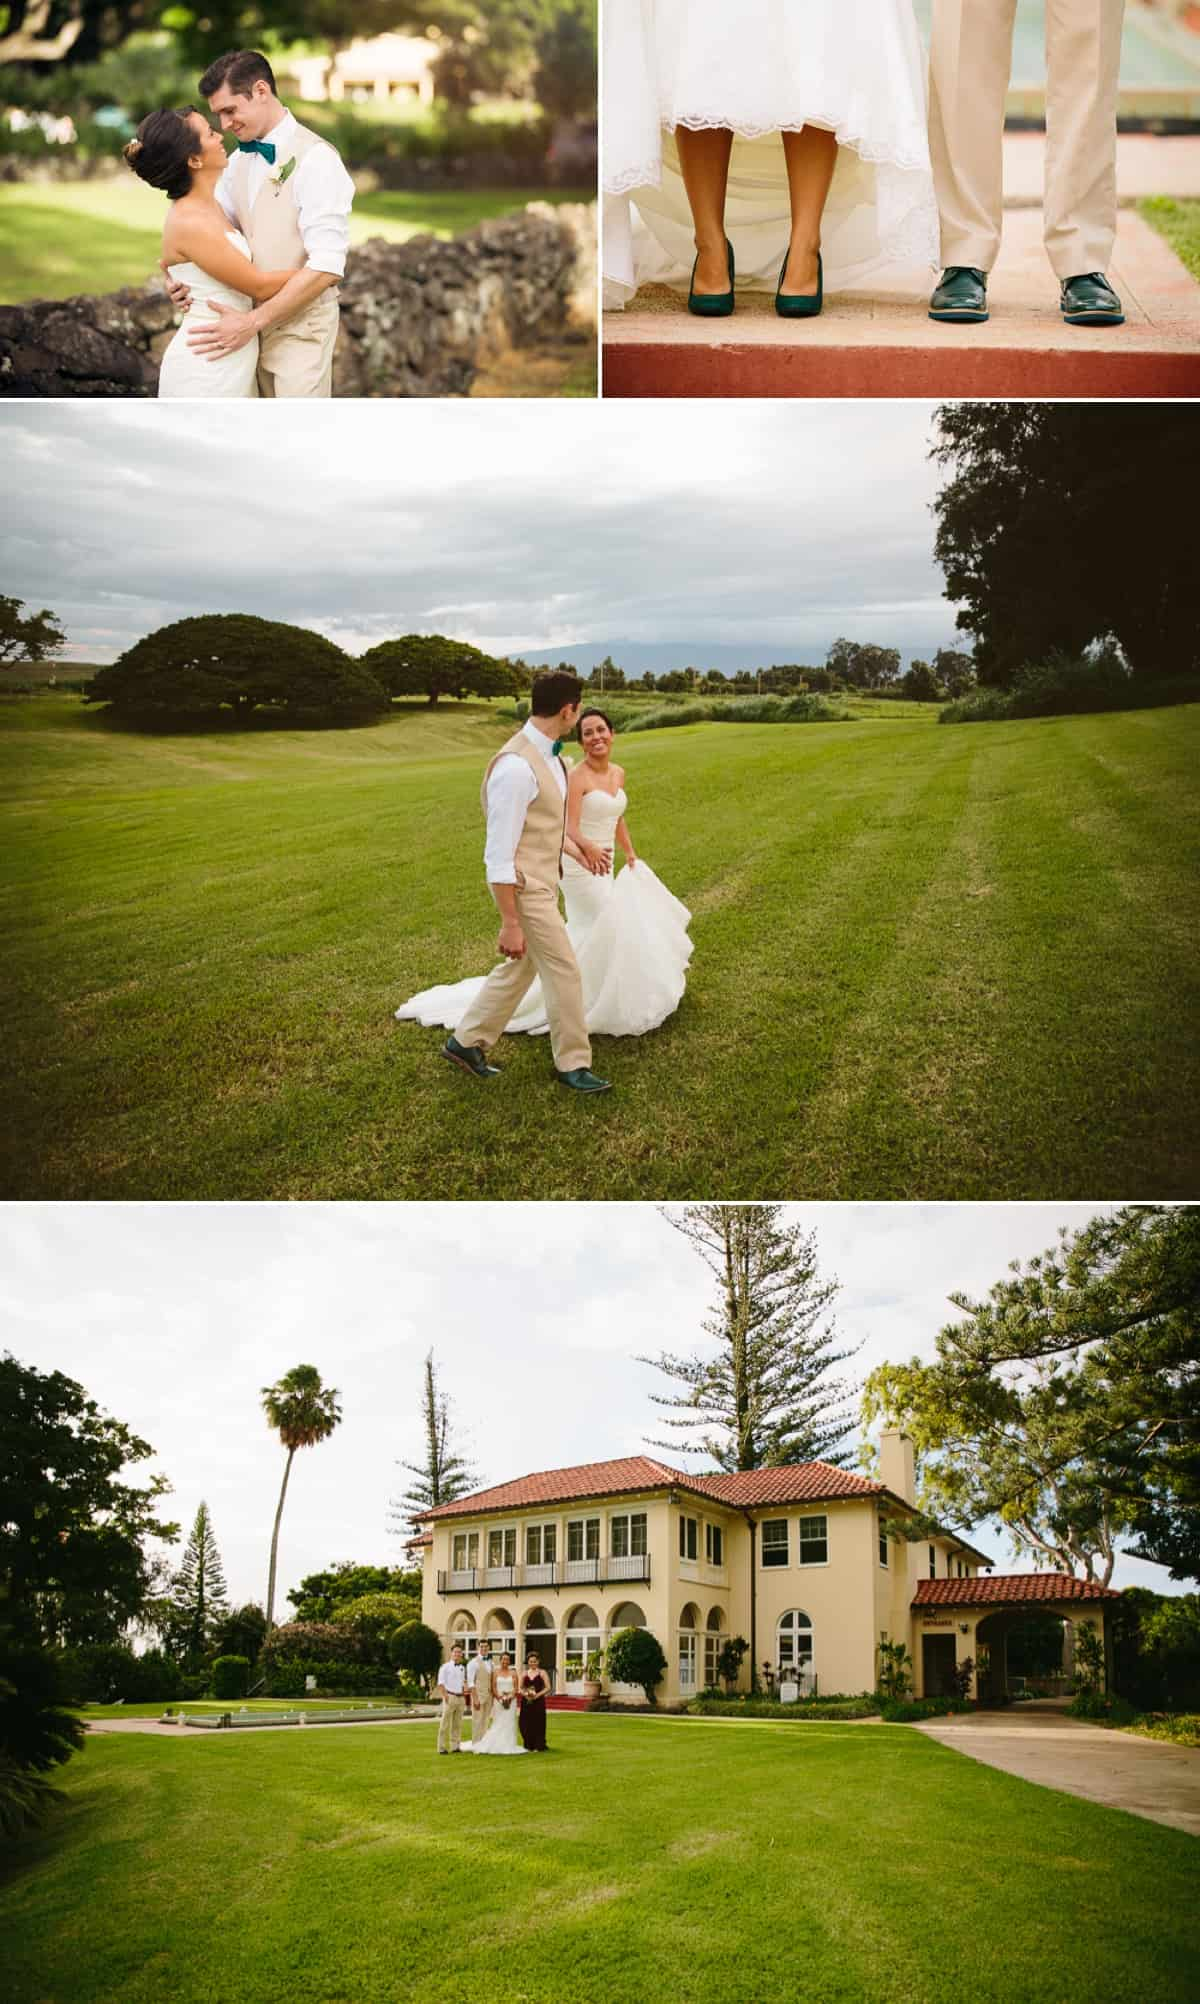 Maui Hawaii Destination Wedding Photographer www.benandhopeweddings.com.au